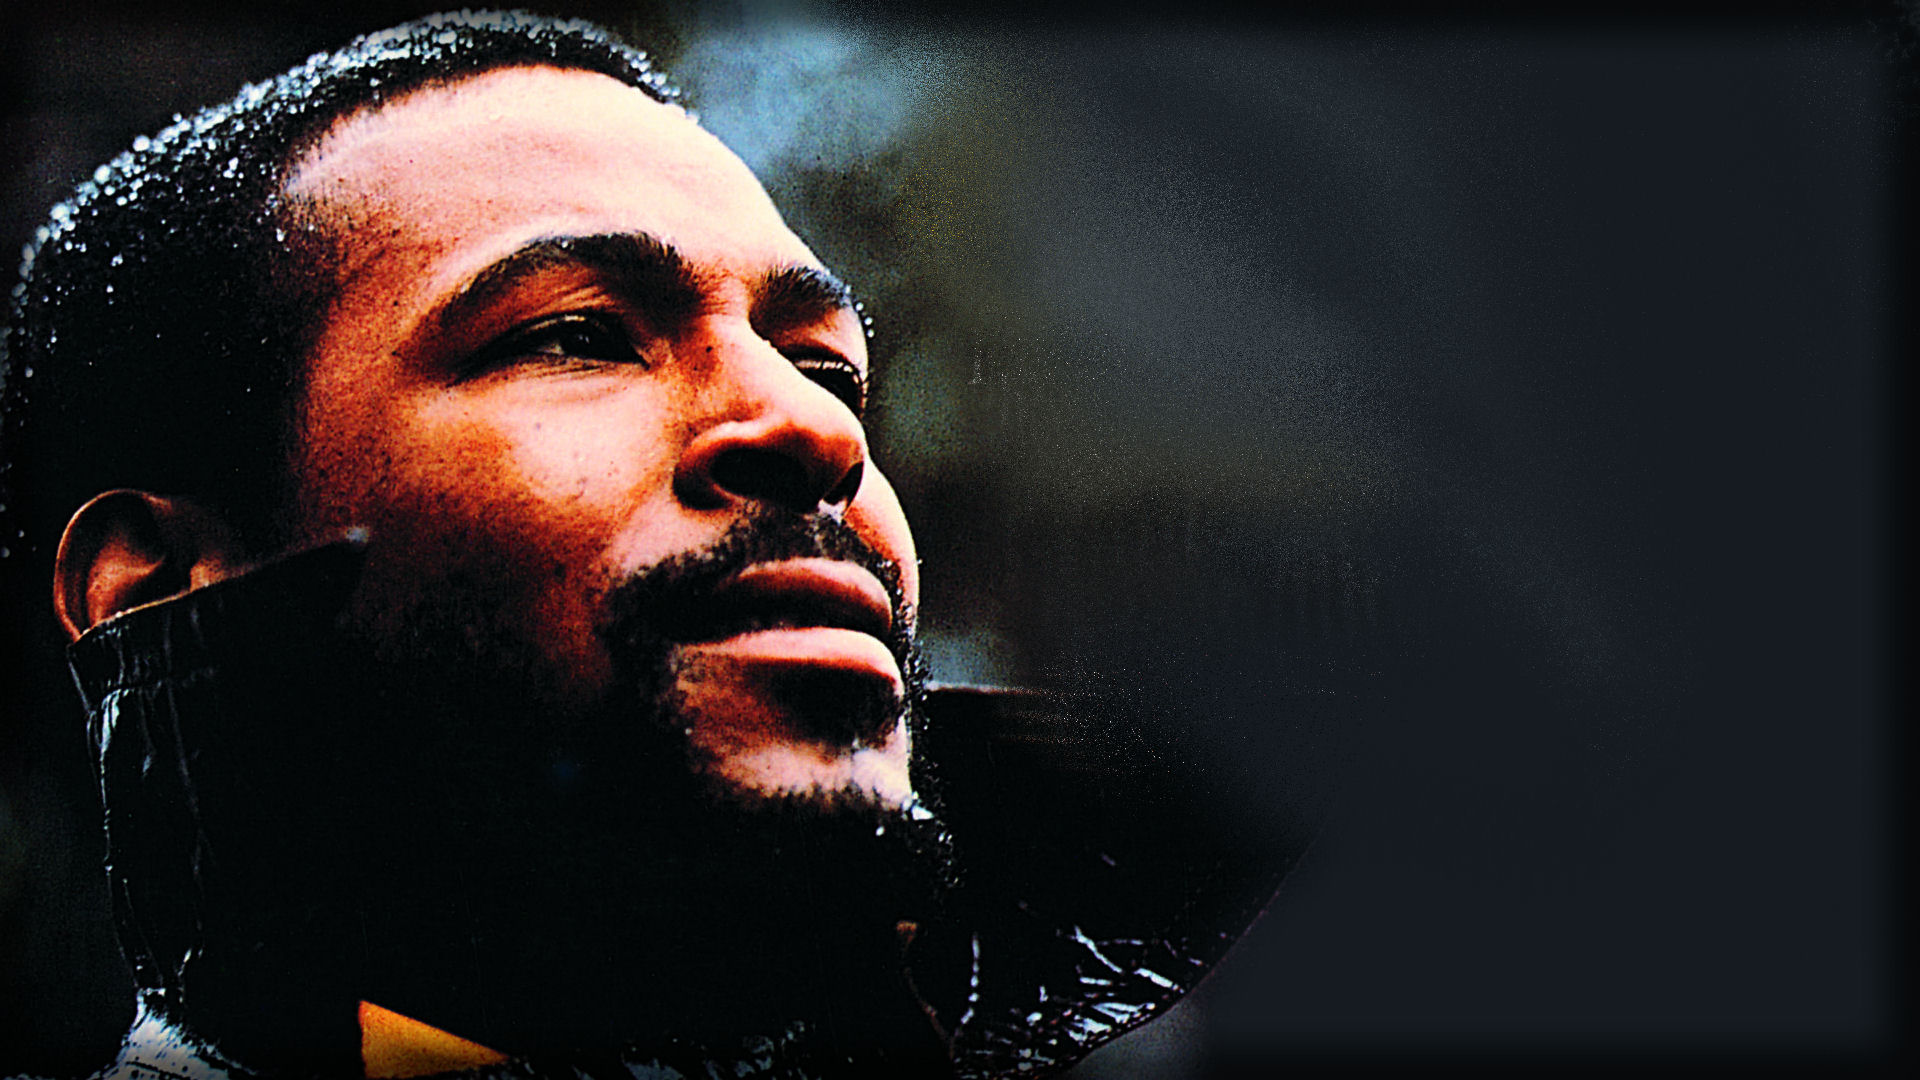 Marvin gaye and